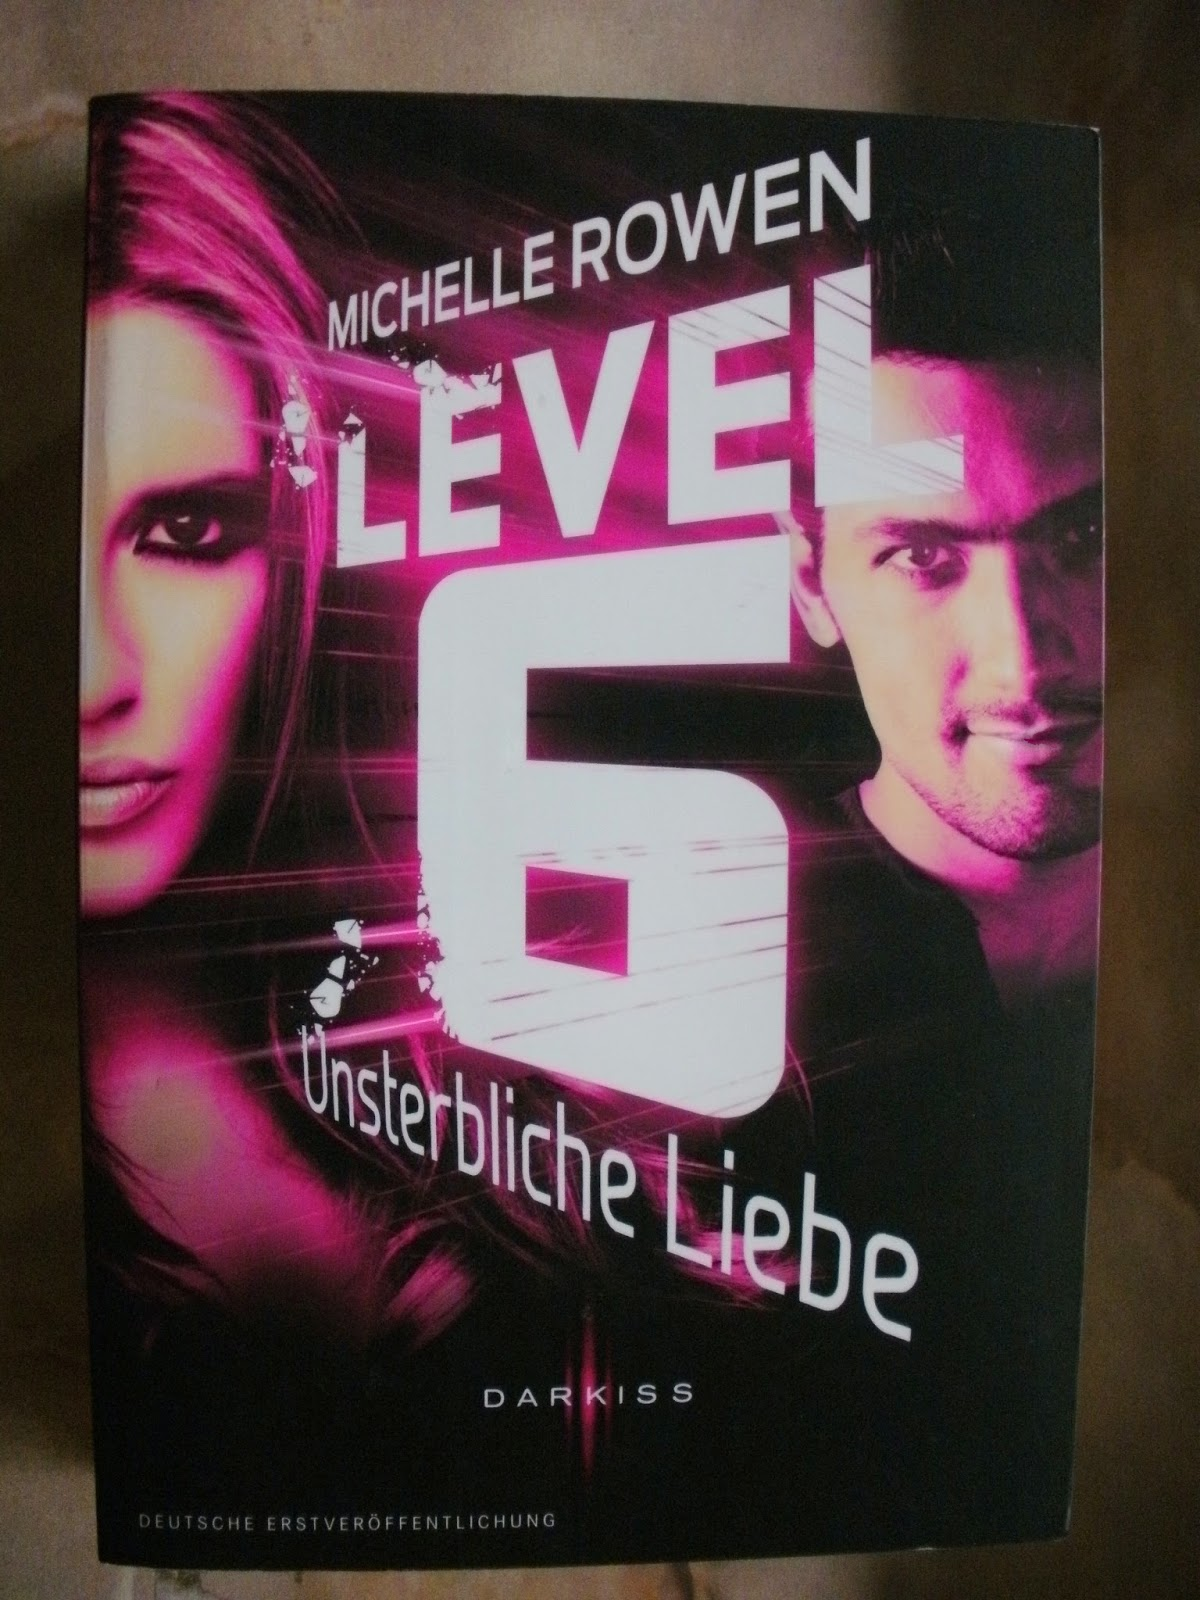 http://www.amazon.de/Level-Unsterbliche-Liebe-Michelle-Rowen/dp/3862788784/ref=sr_1_1?ie=UTF8&qid=1429120991&sr=8-1&keywords=level+6